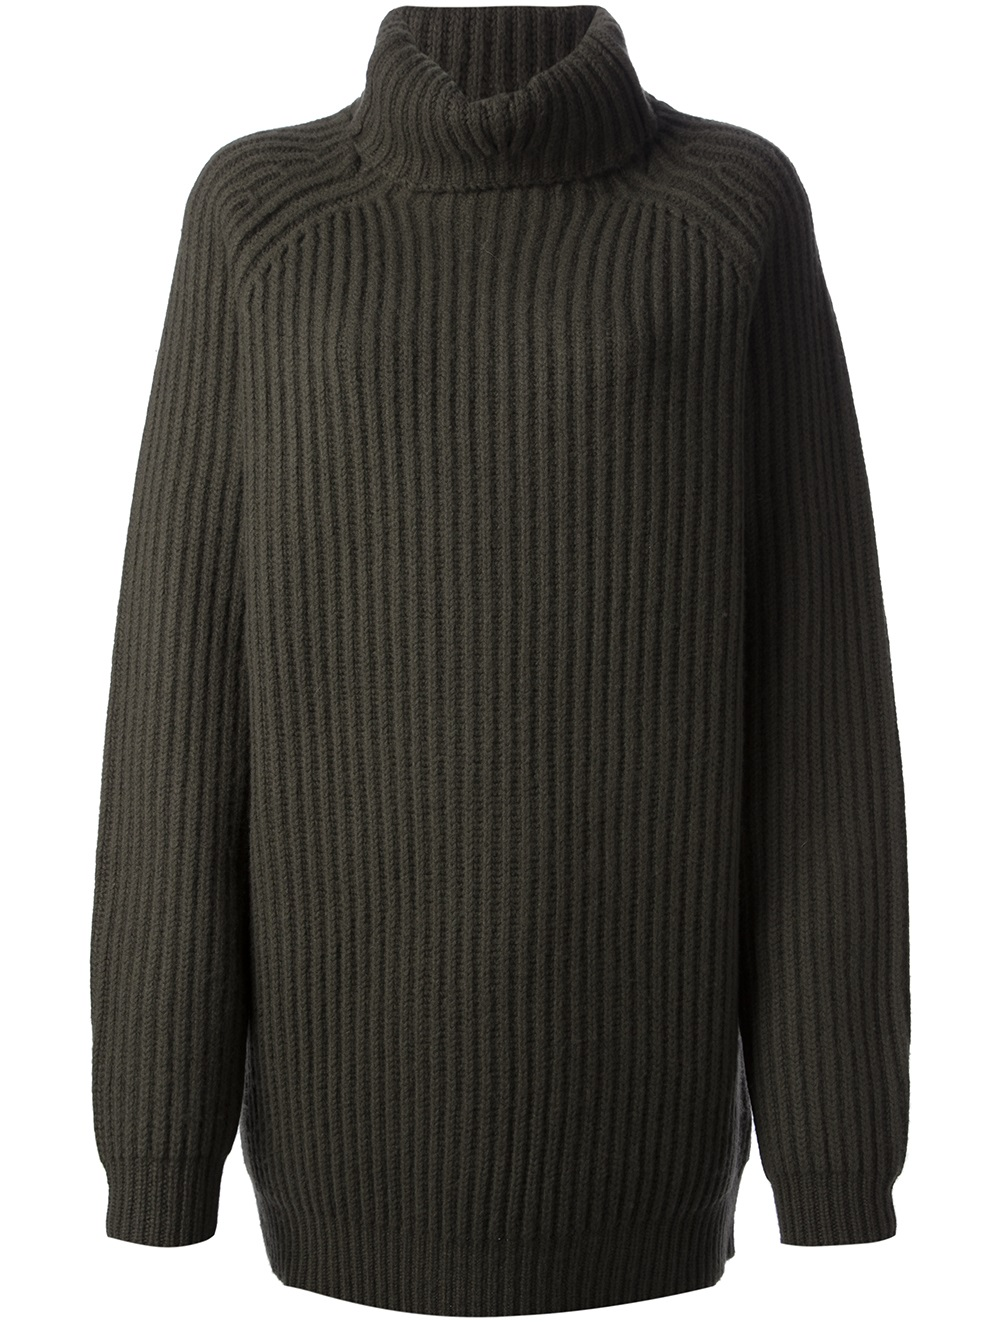 haider ackermann oversize roll neck sweater in green lyst. Black Bedroom Furniture Sets. Home Design Ideas